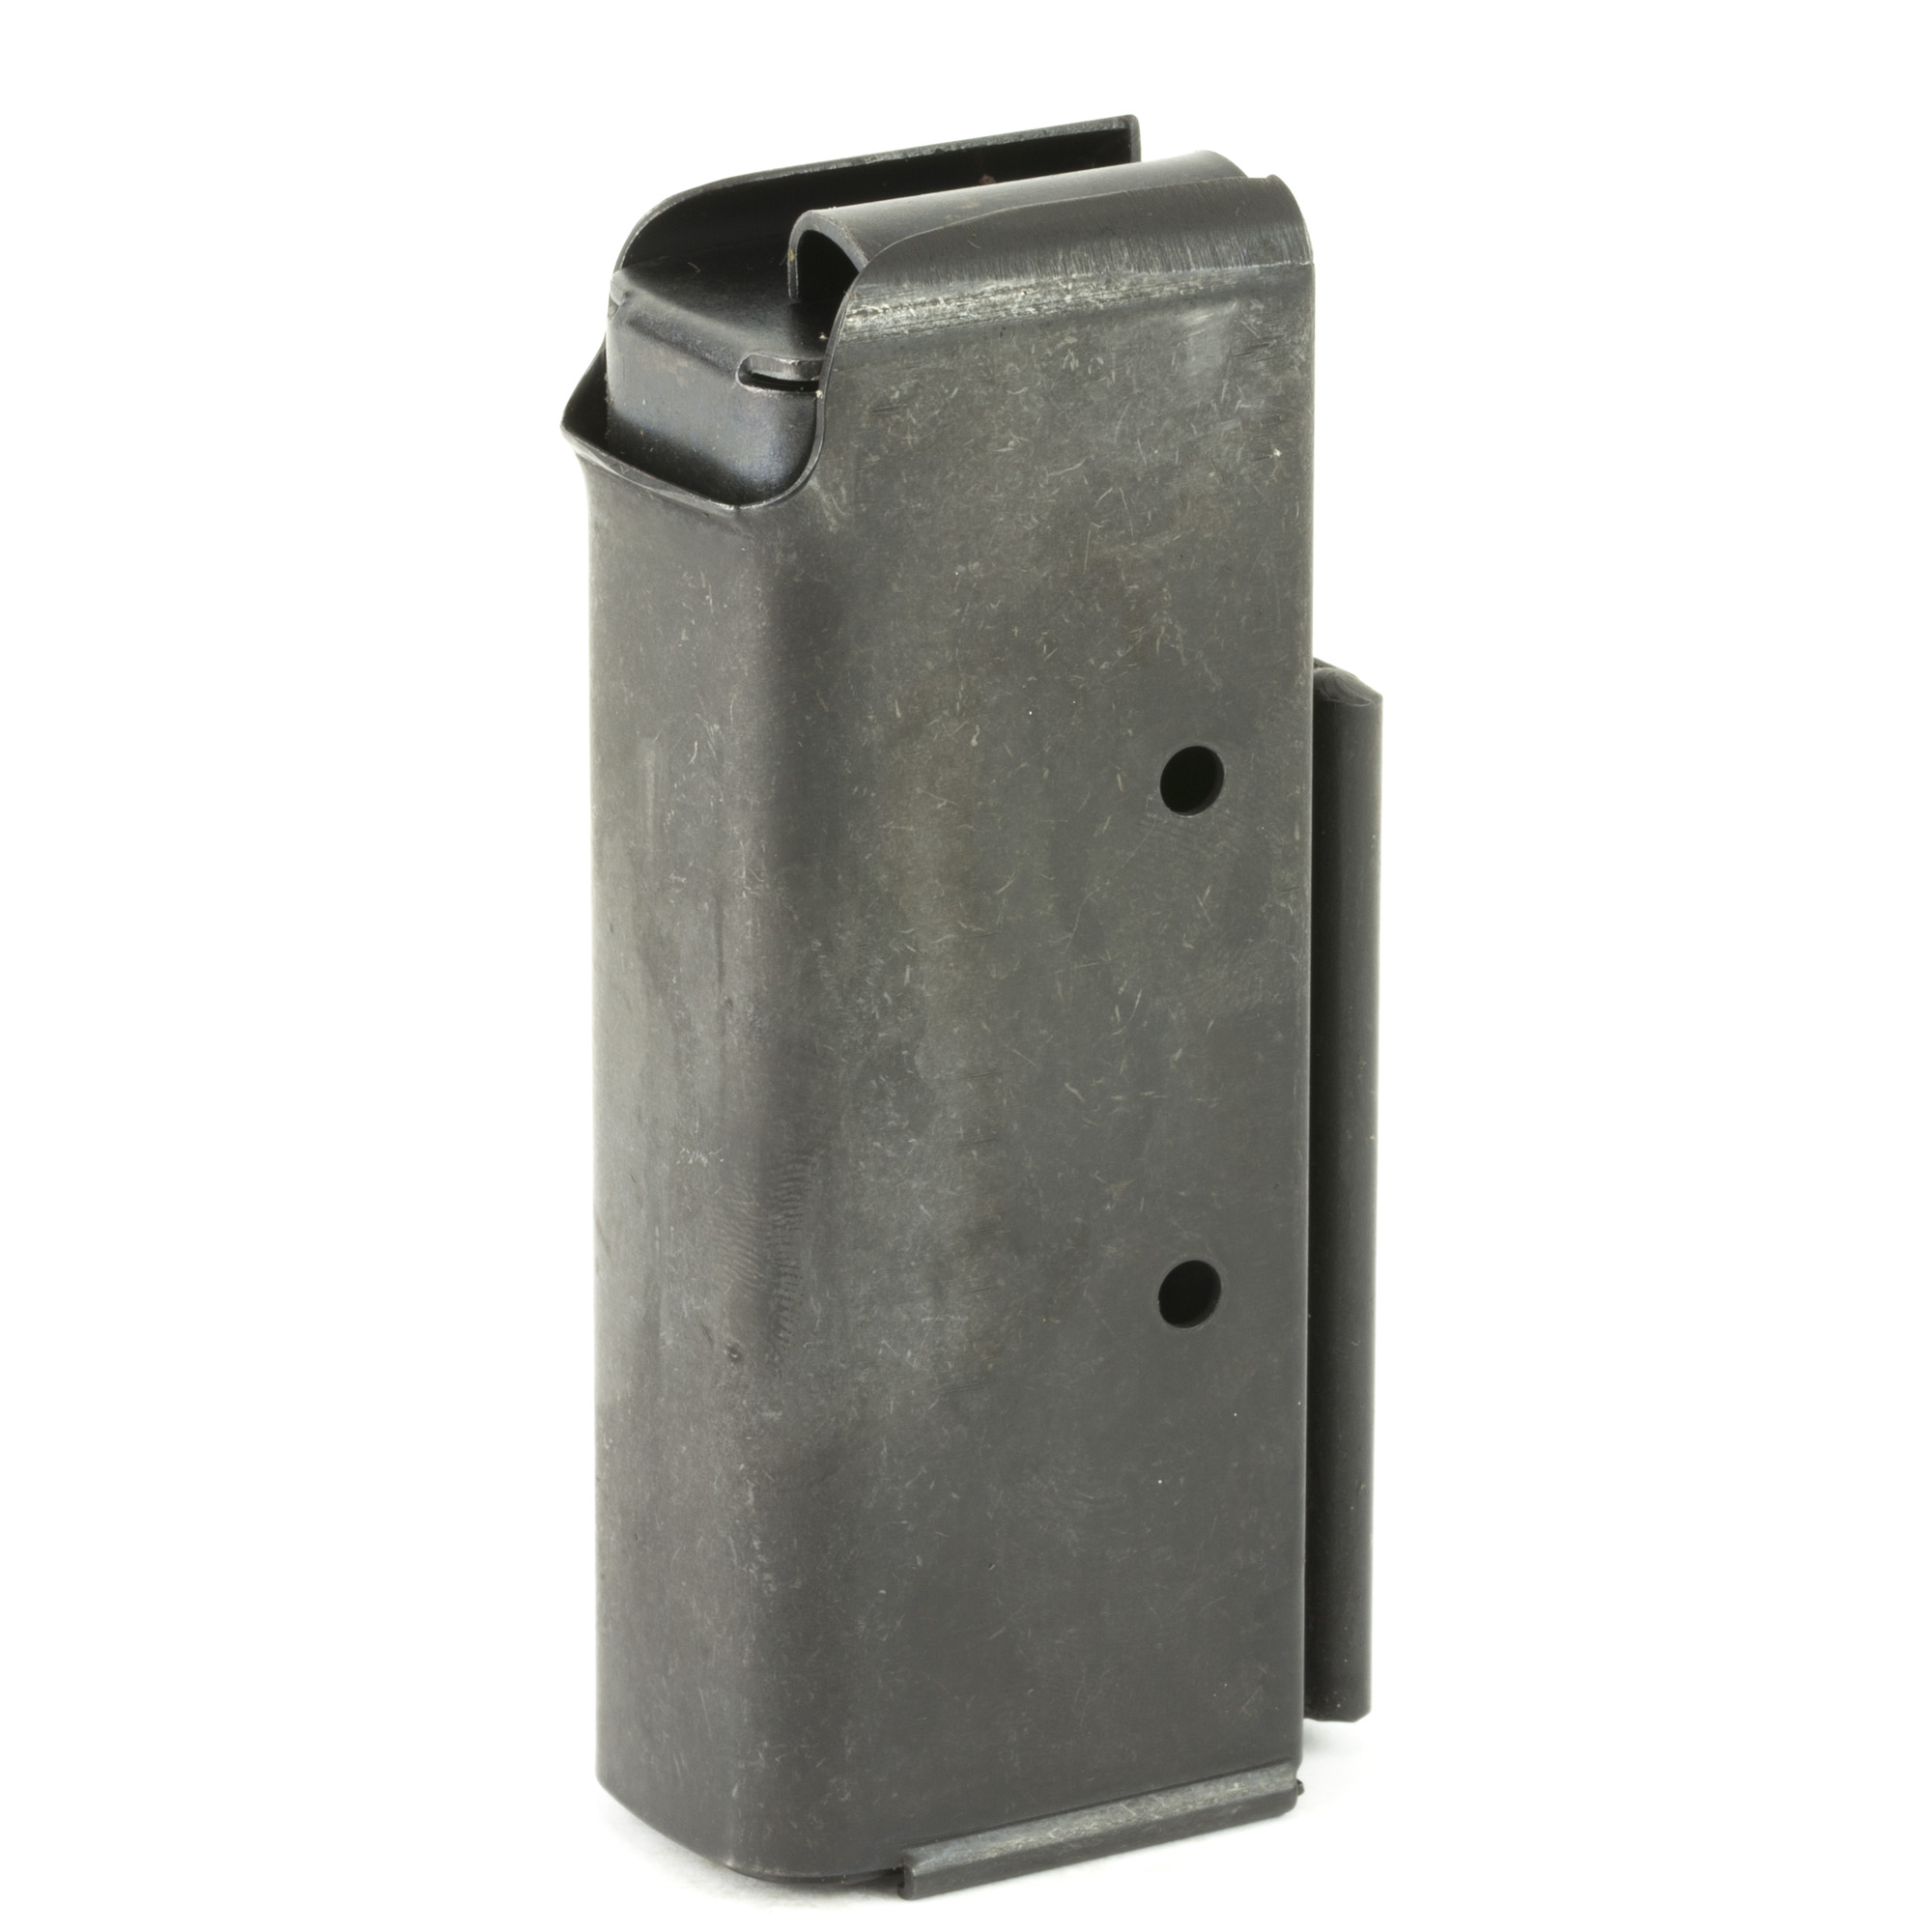 This Auto Ordnance Thompson Stick magazine is designed to hold 10 rounds of .45ACP ammunition and is made of steel.